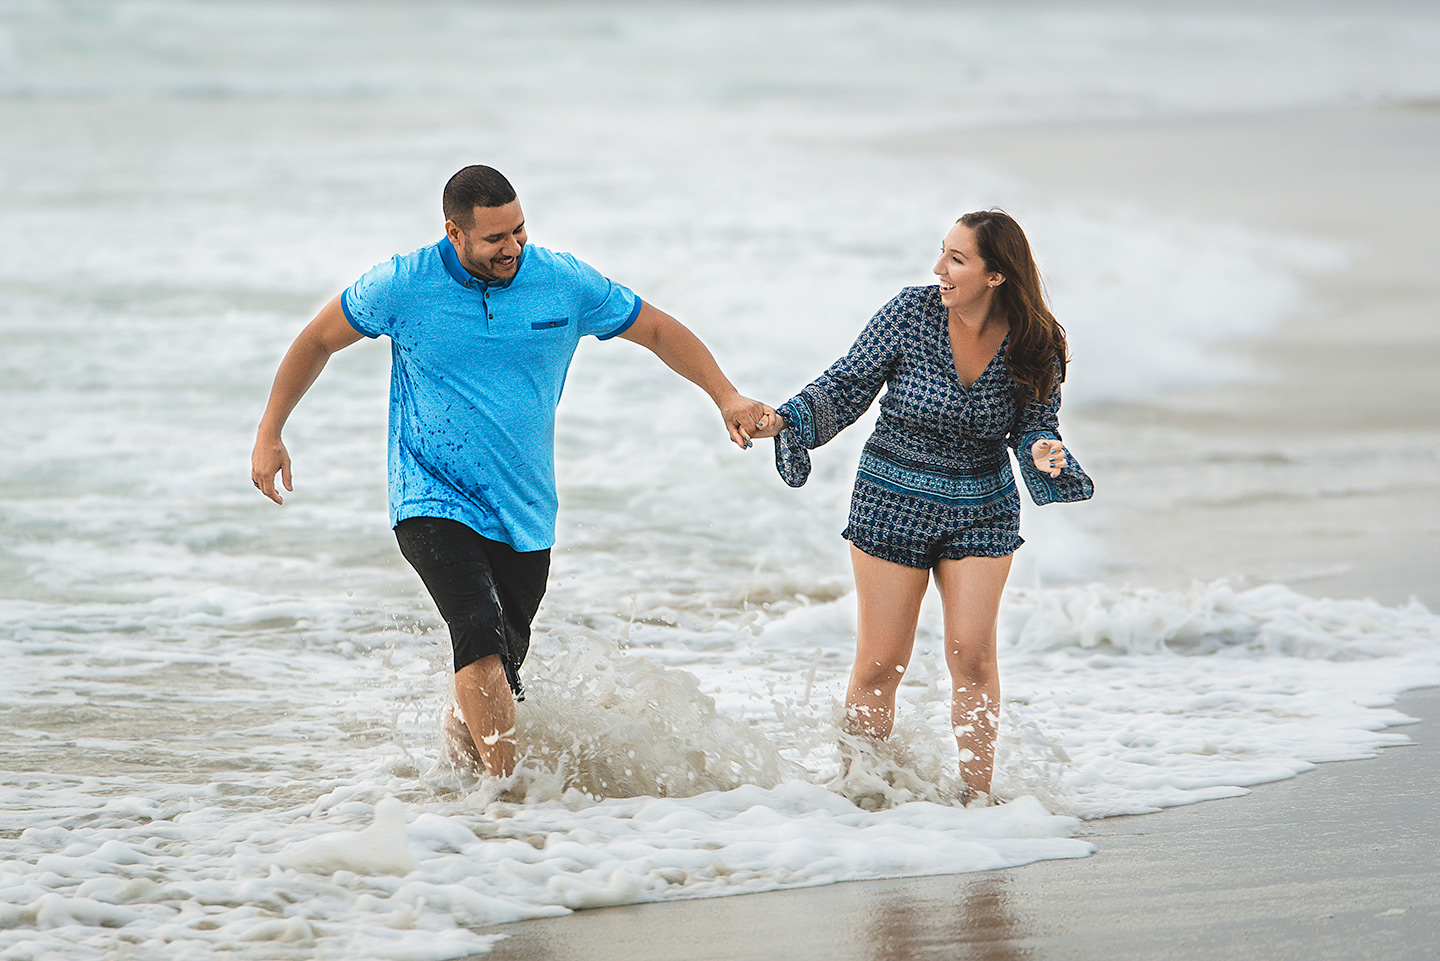 couple-playing-in-water-san-diego-mission-beach